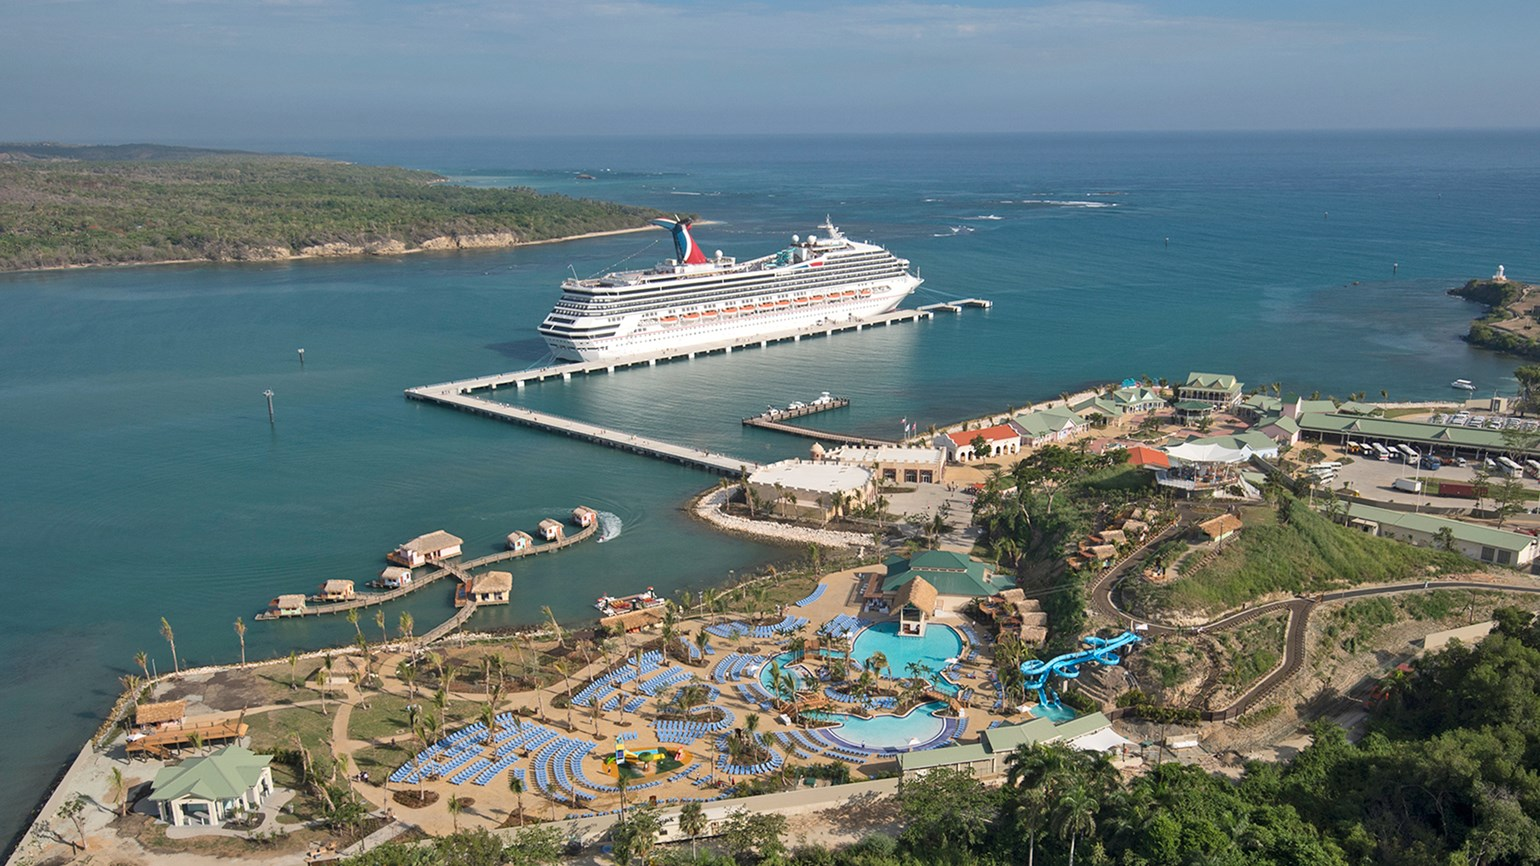 The Carnival Victory in Amber Cove on Tuesday.